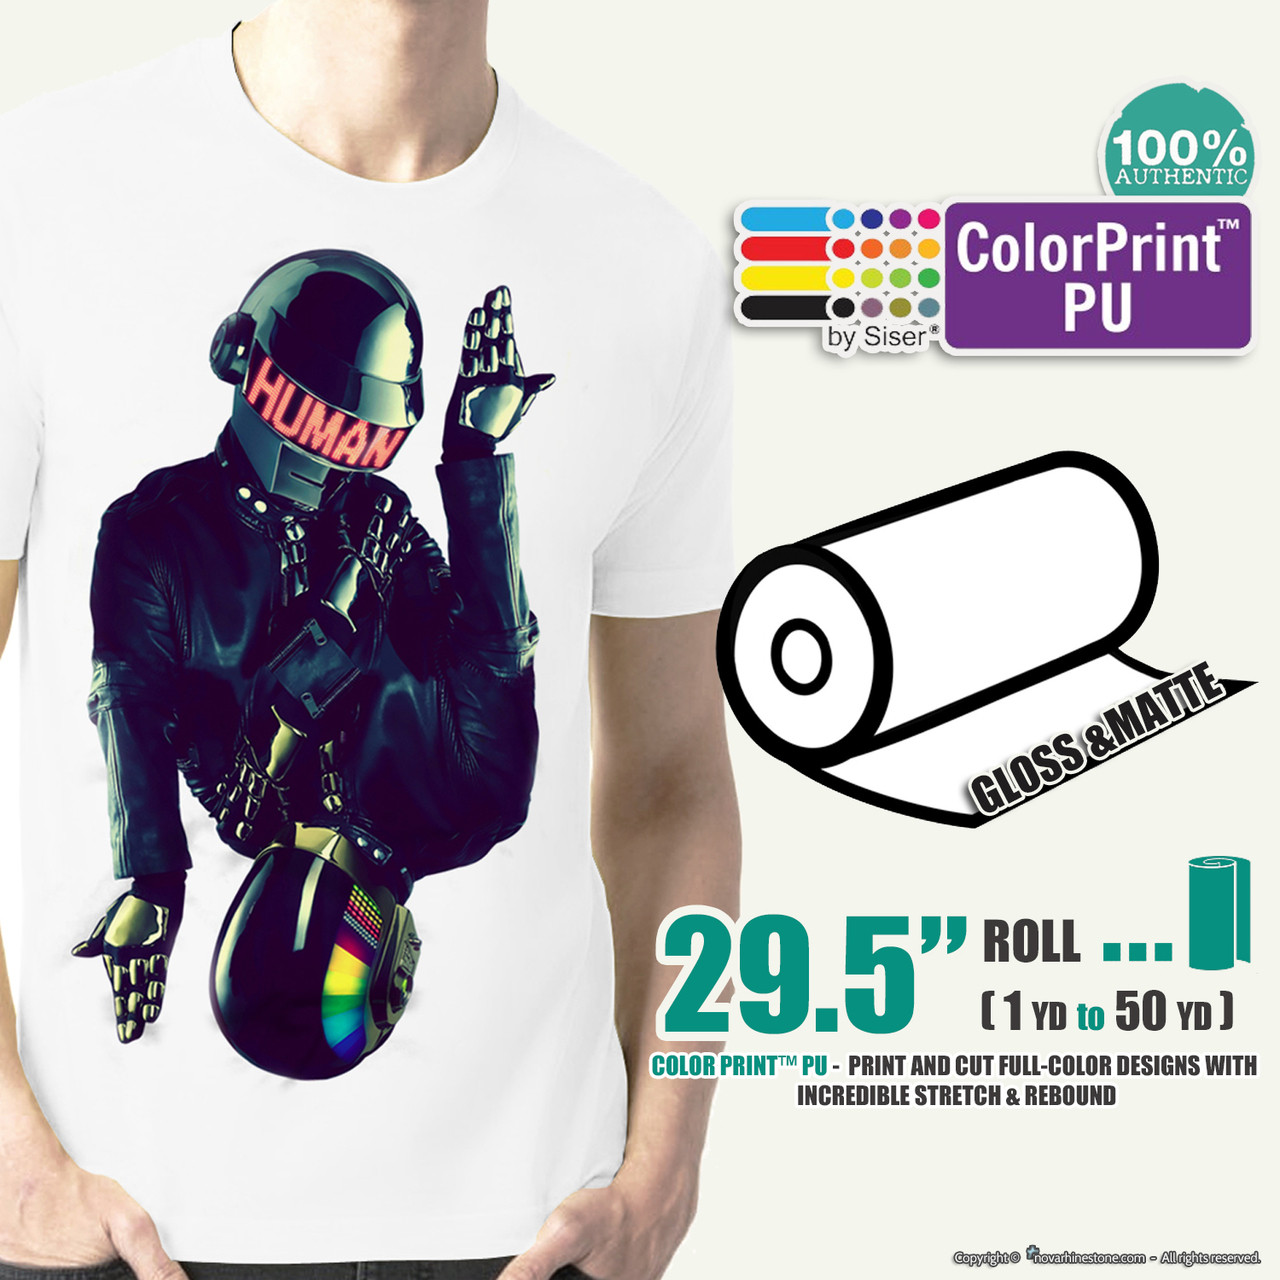 image about Siser Colorprint Easy Printable Heat Transfer Vinyl known as Siser ColorPrint PU - 29.5\